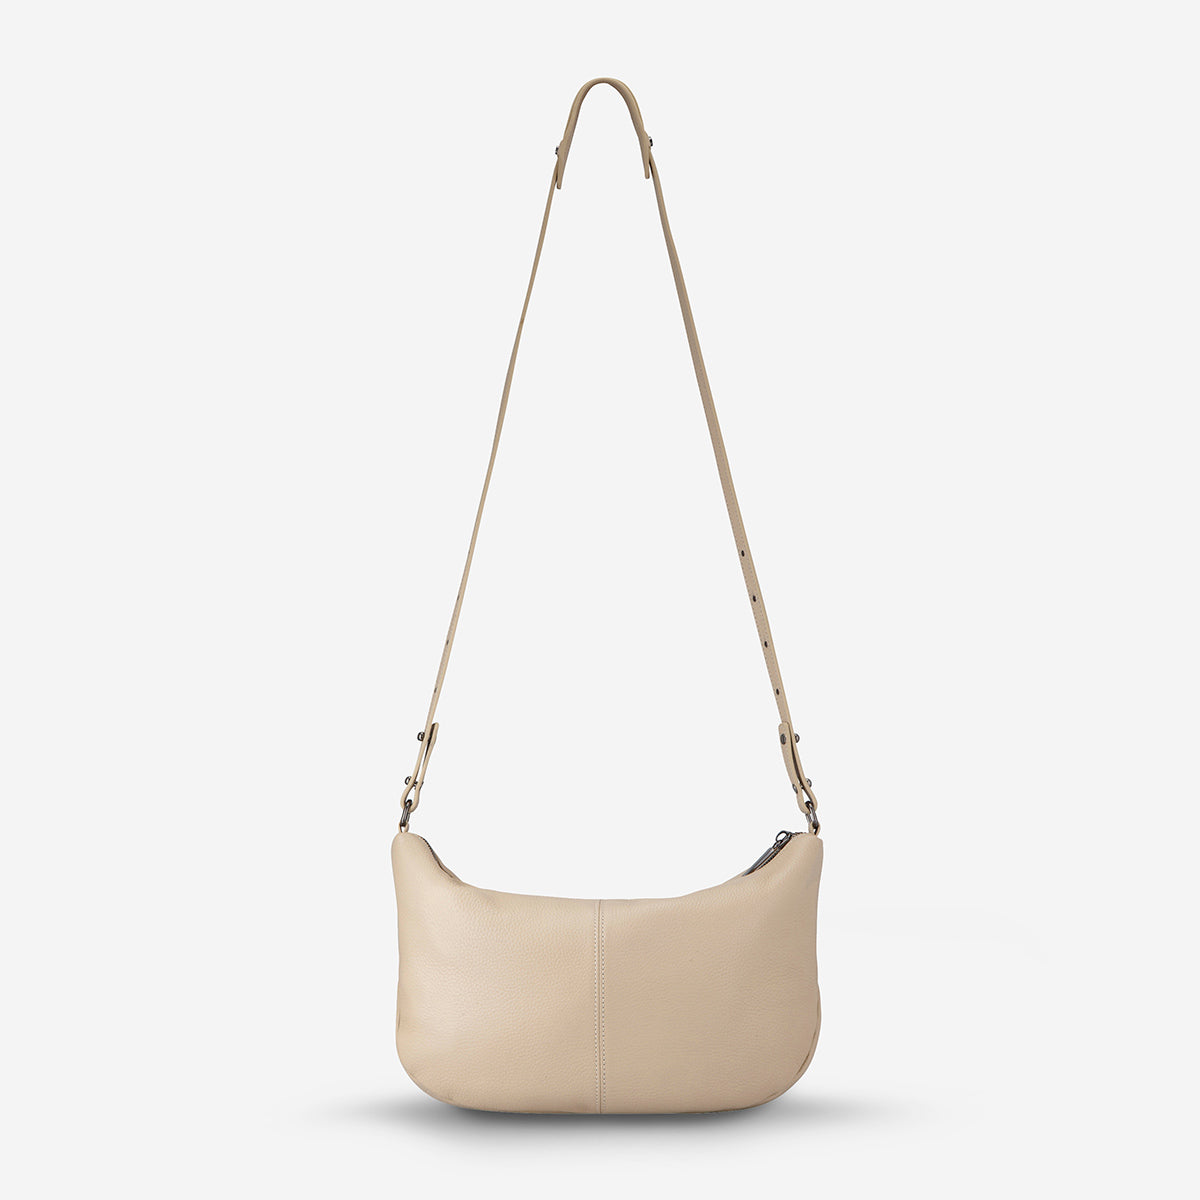 Status Anxiety At A Loss Women's Leather Crossbody Slouch Bag - Nude